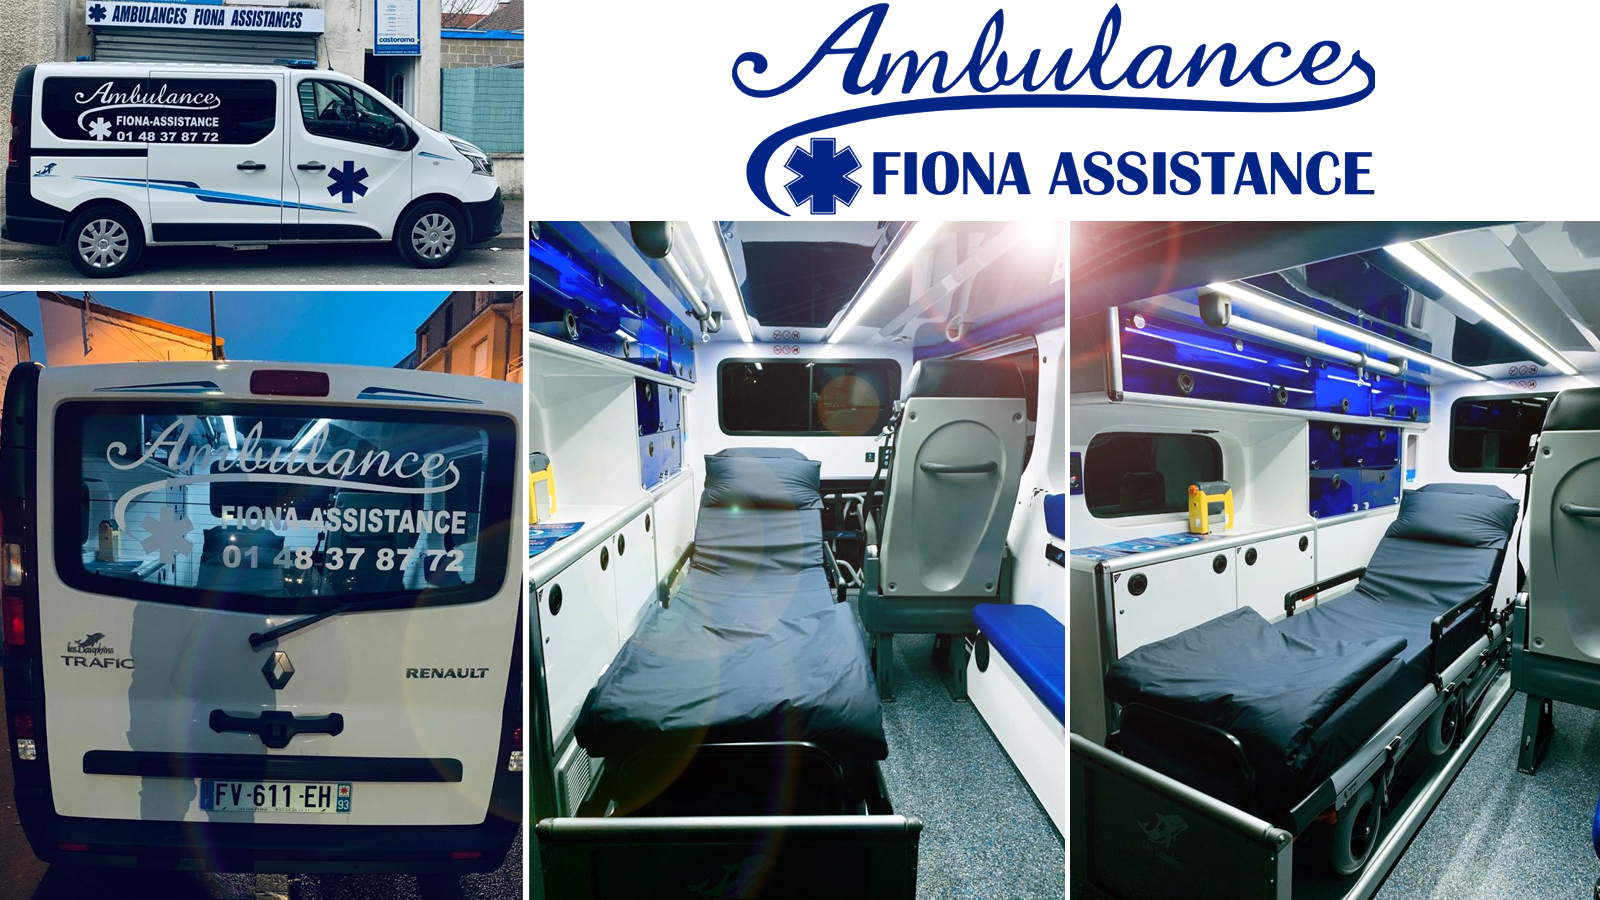 AMBULANCE SEINE-SAINT-DENIS 93 Ambulances FIONA ASSISTANCE